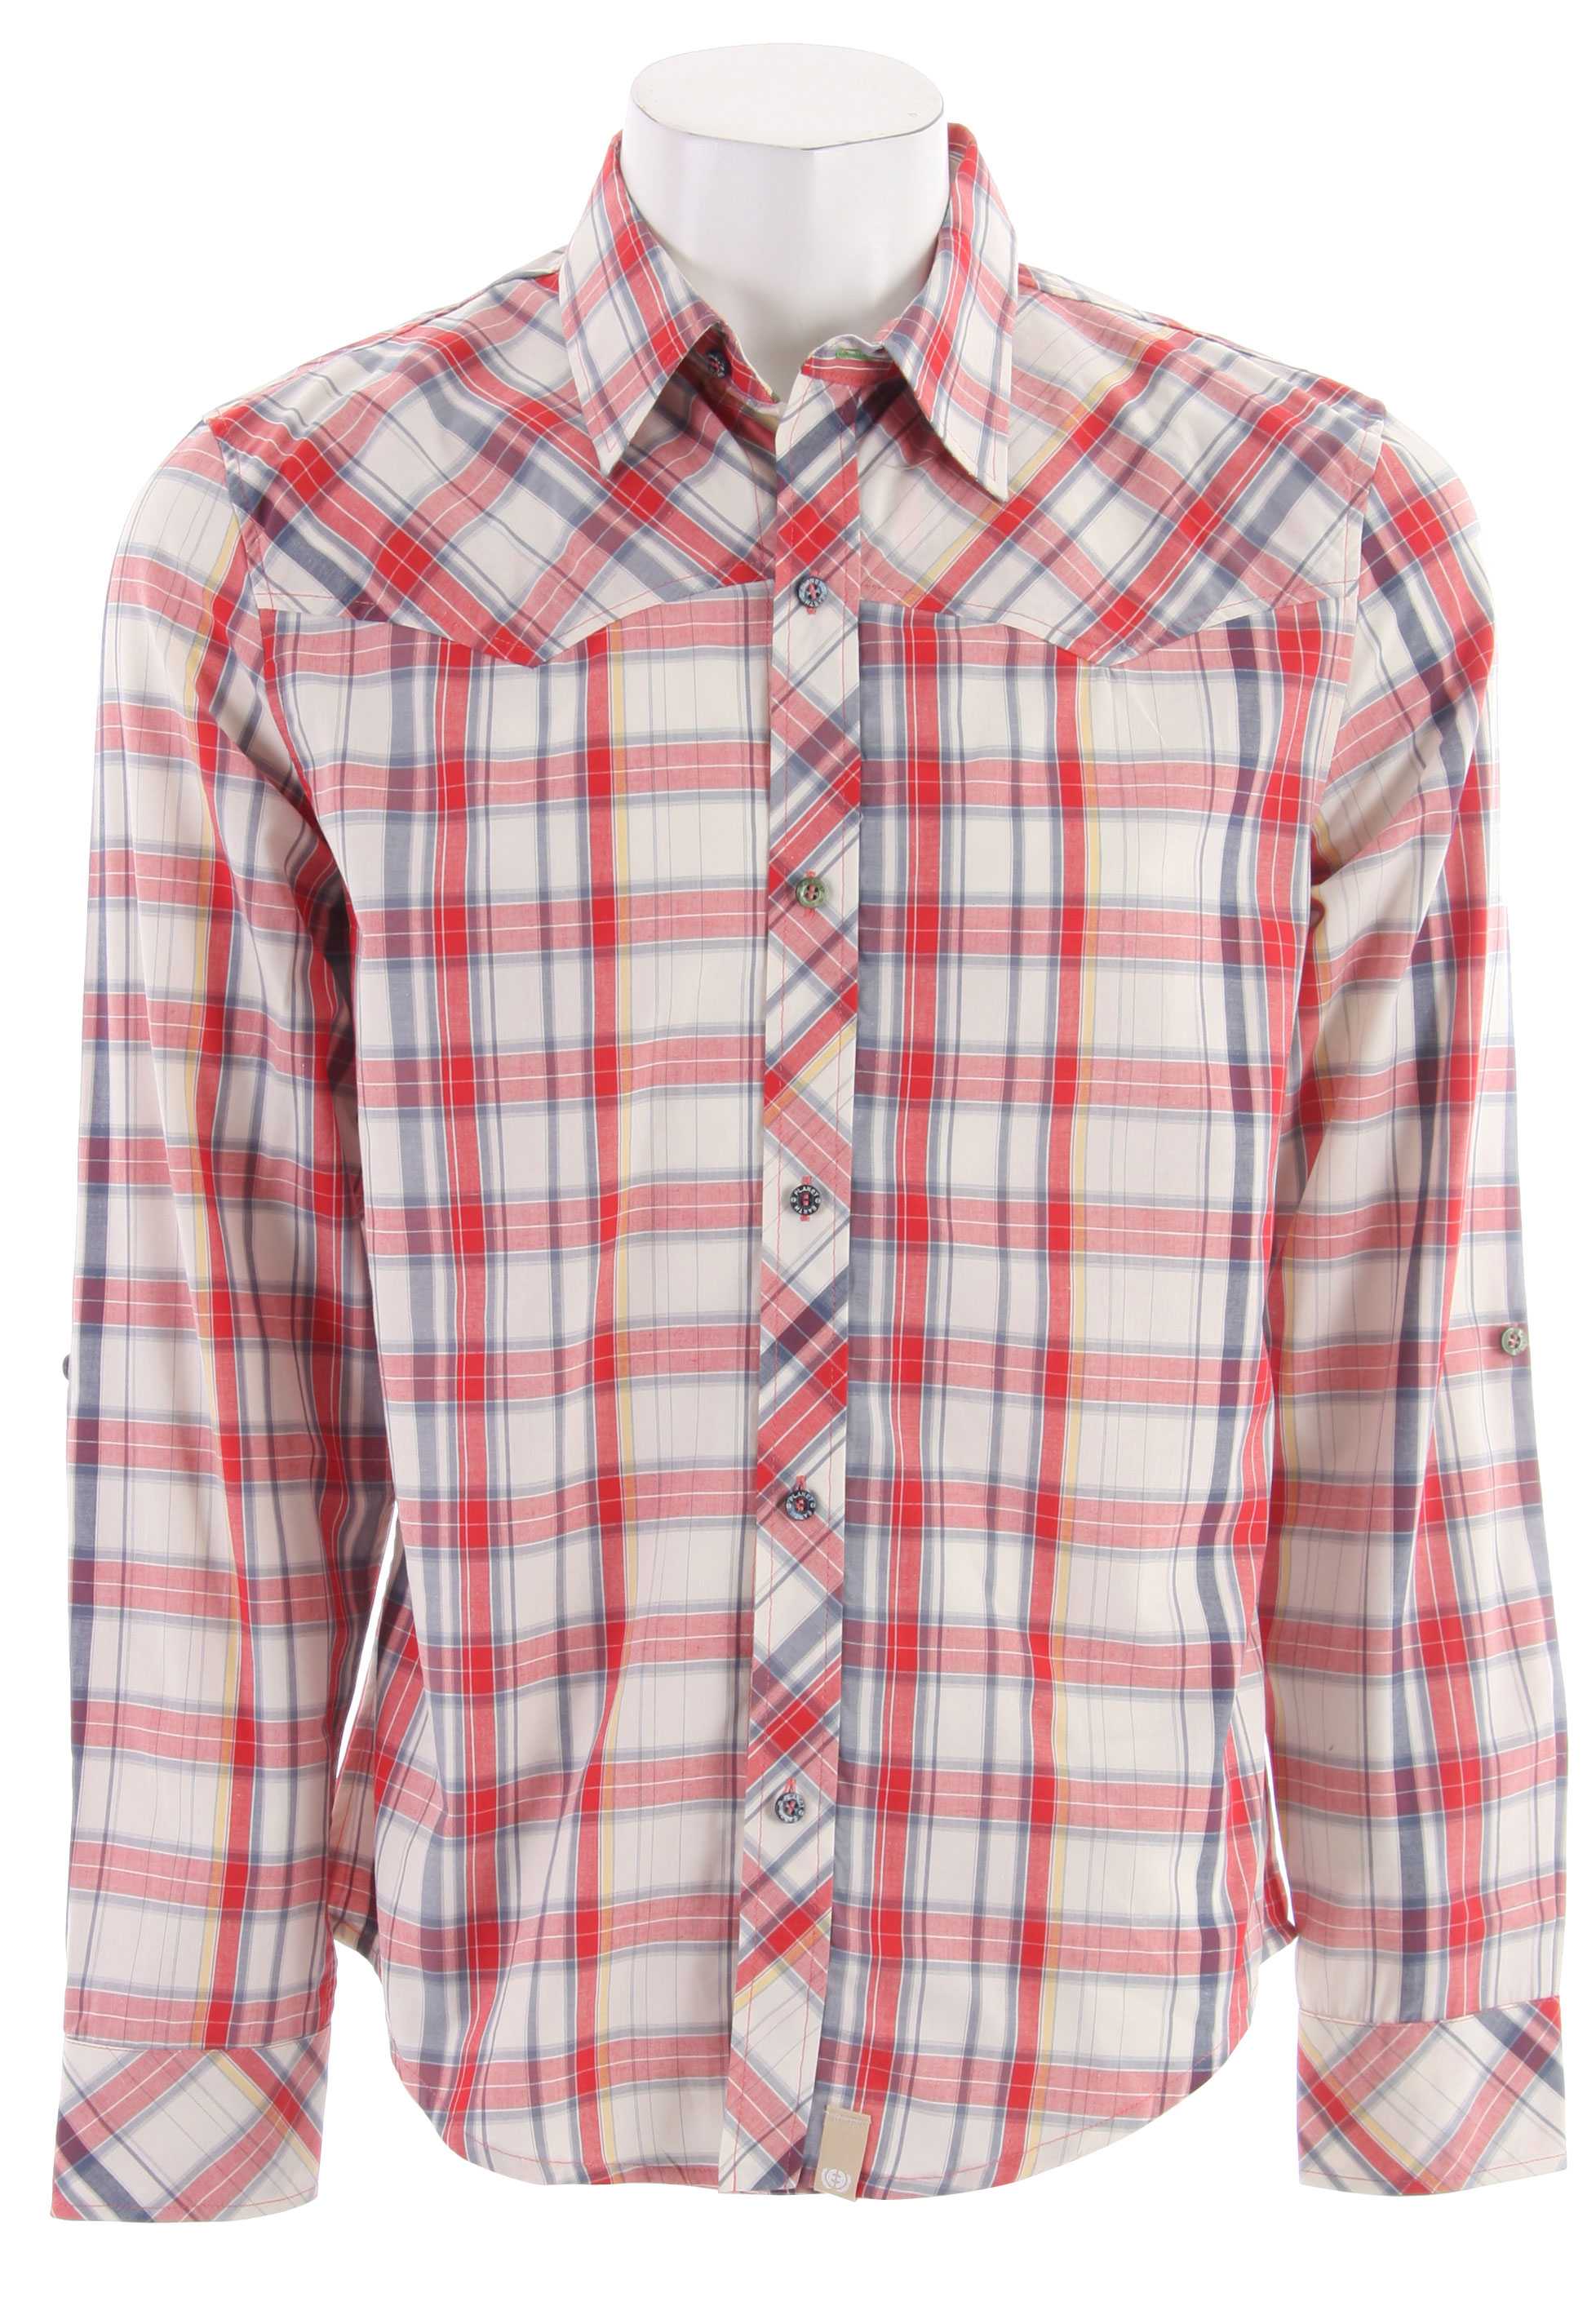 Planet Earth Ranger L/S Shirt Red Plaid - $20.95